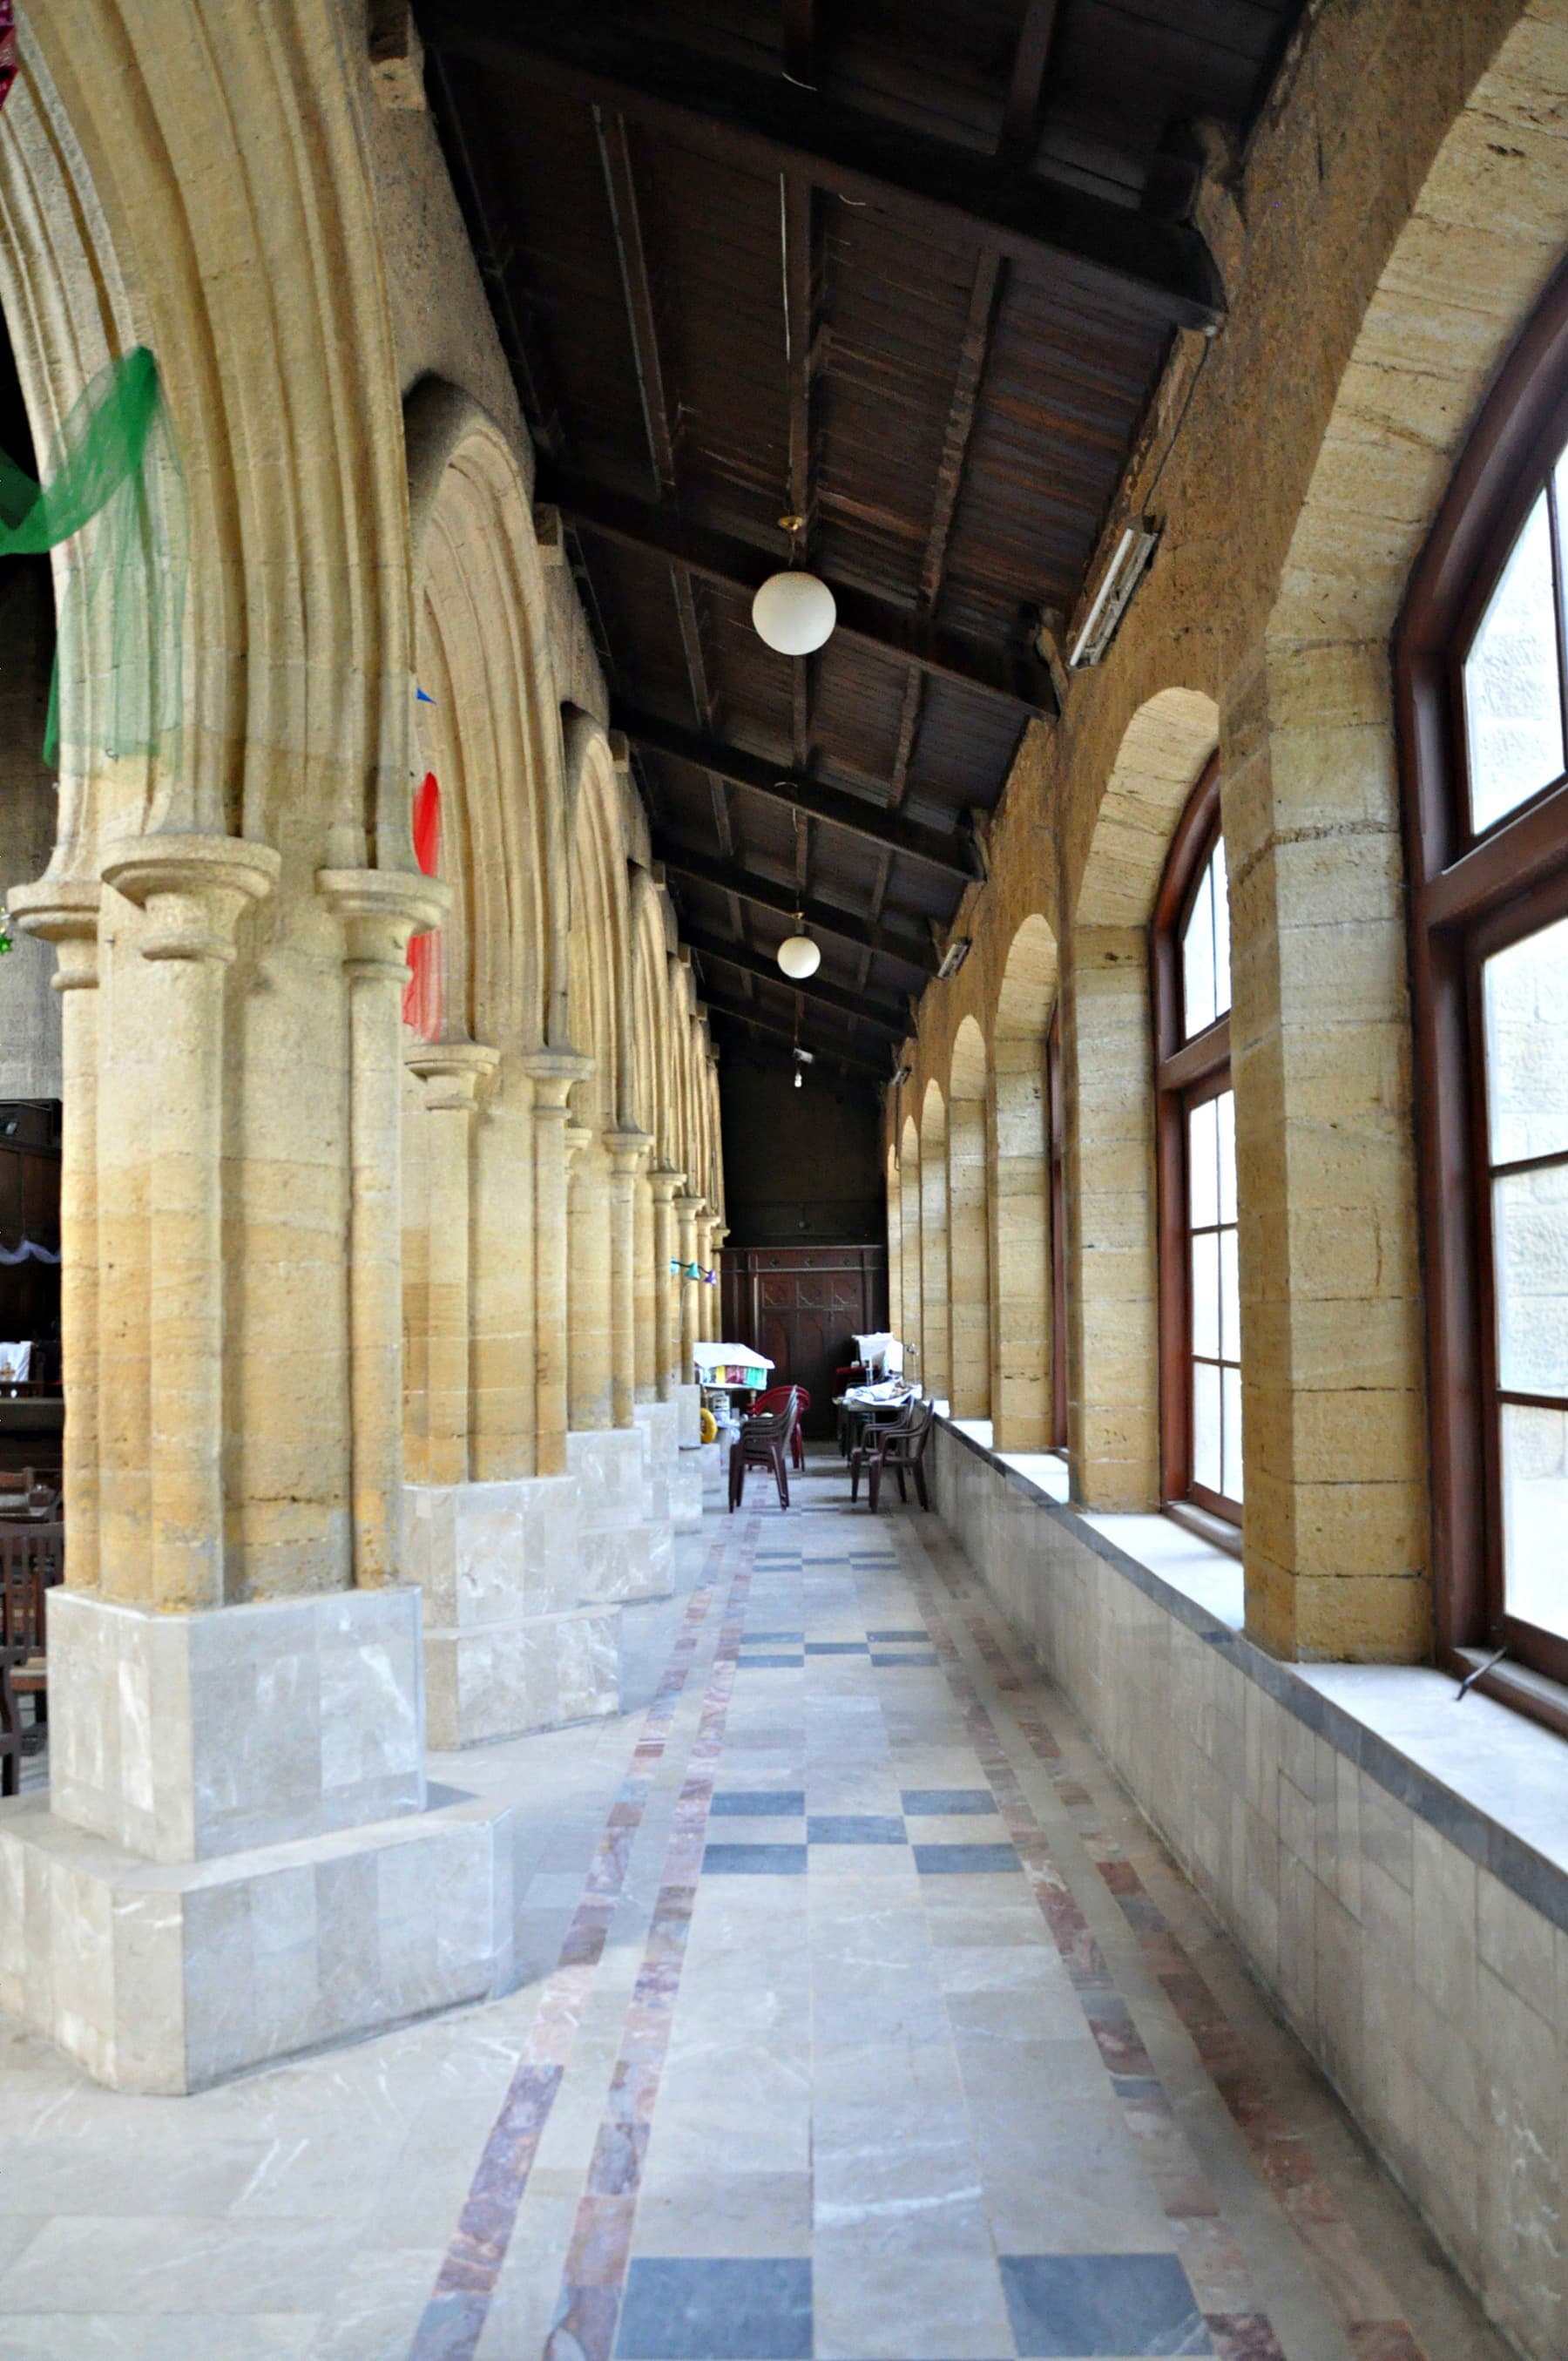 Both sides of the main hall have large windows.